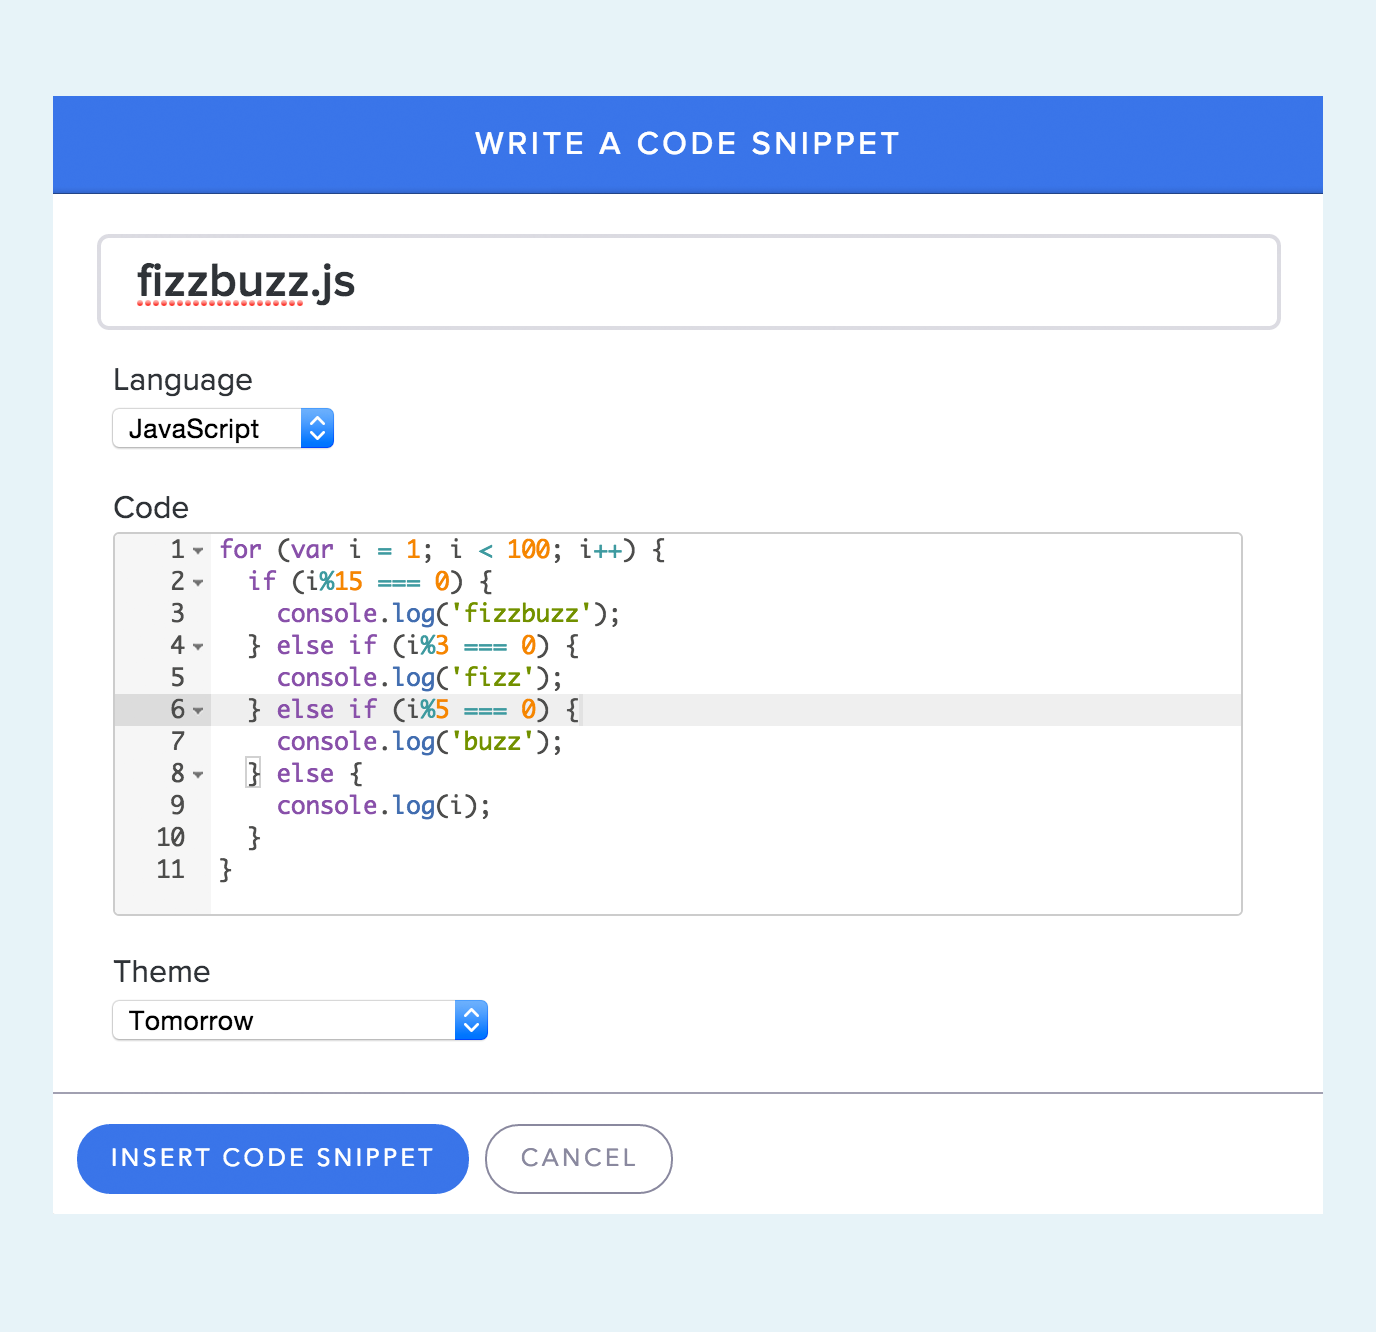 Insert code snippet into email